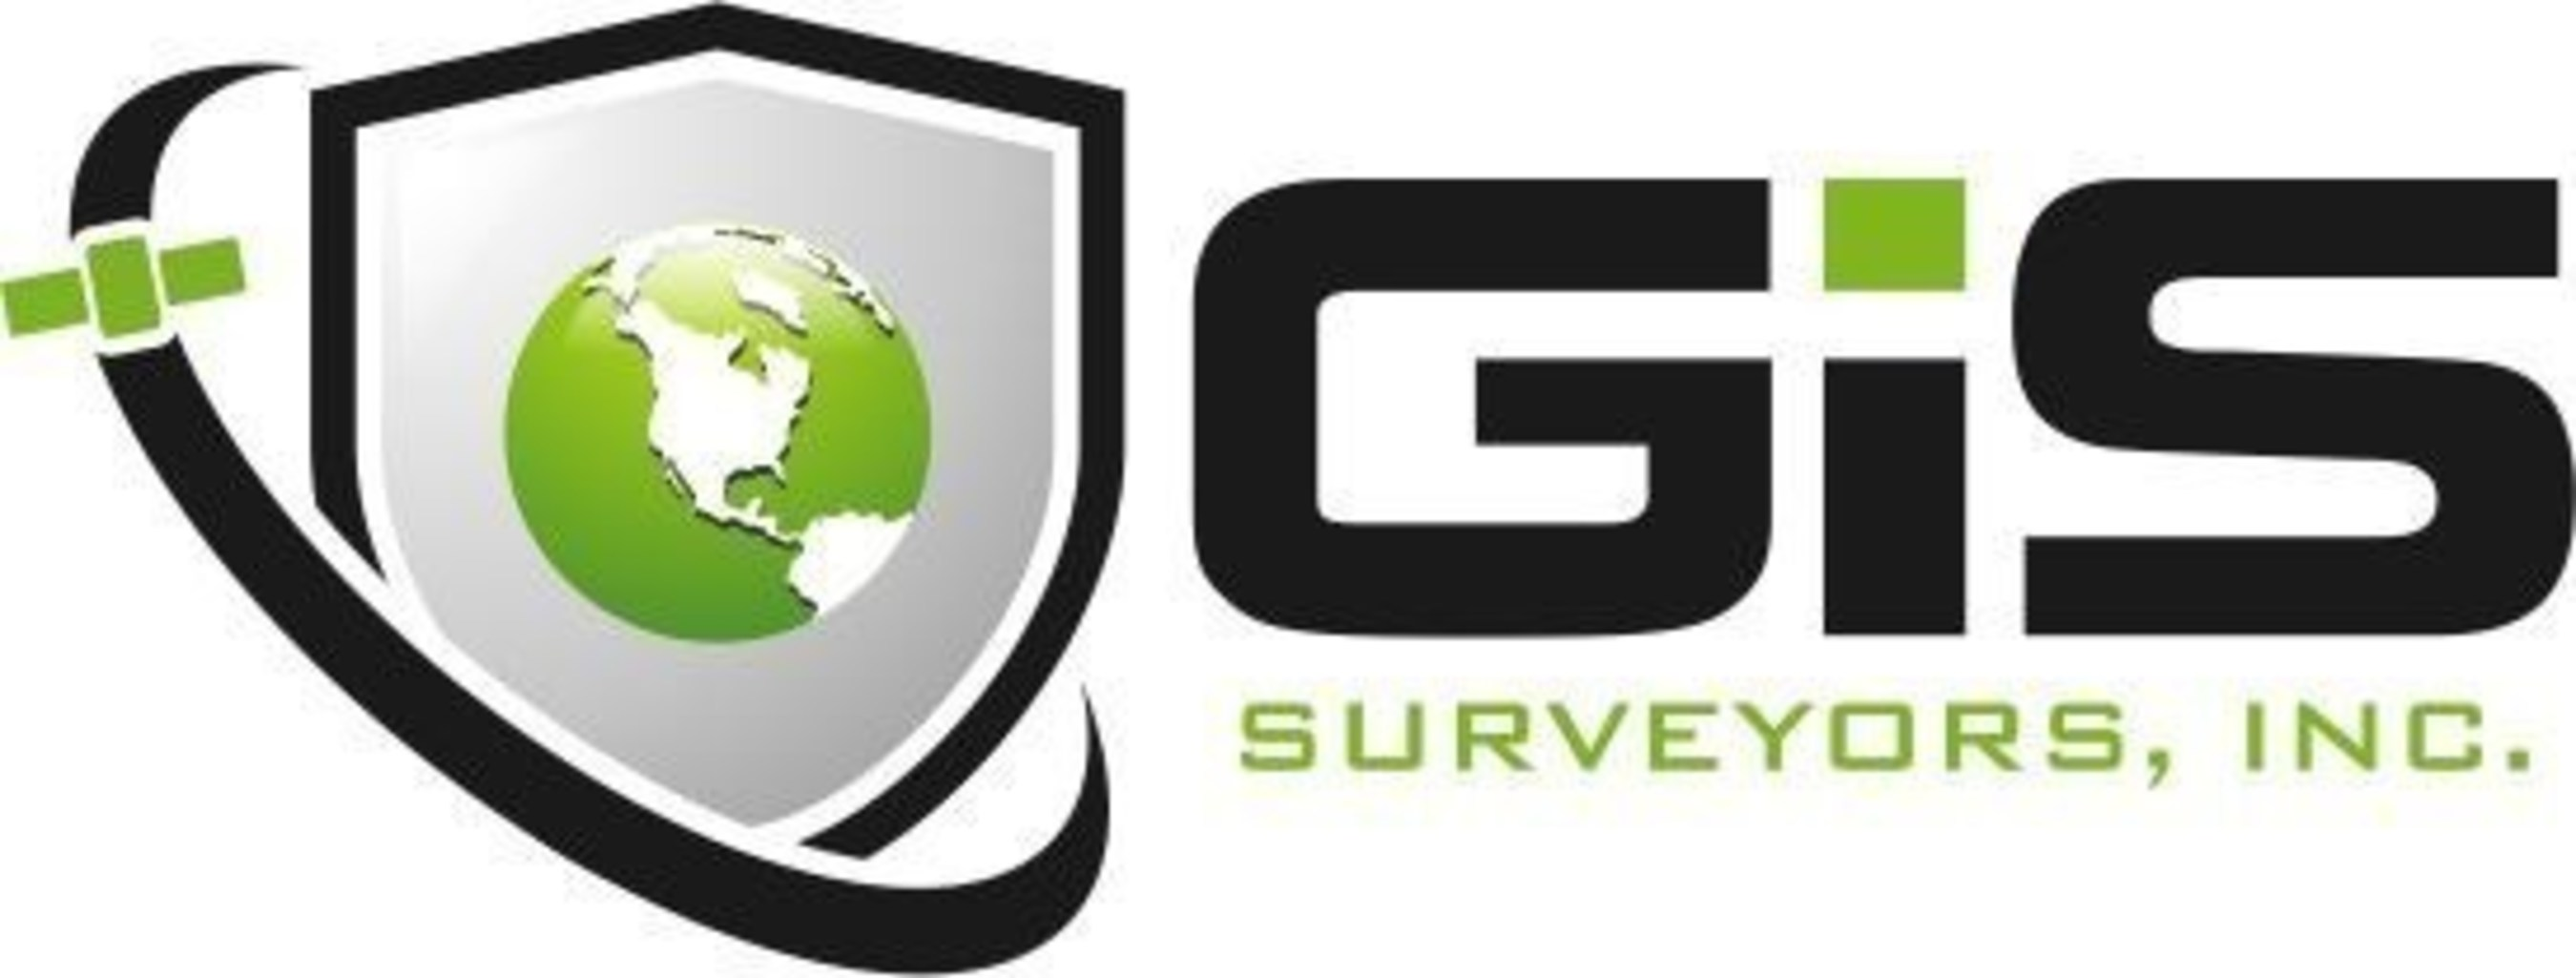 Gis Surveyors Inc Awarded Status As Service Disabled Veteran Owned